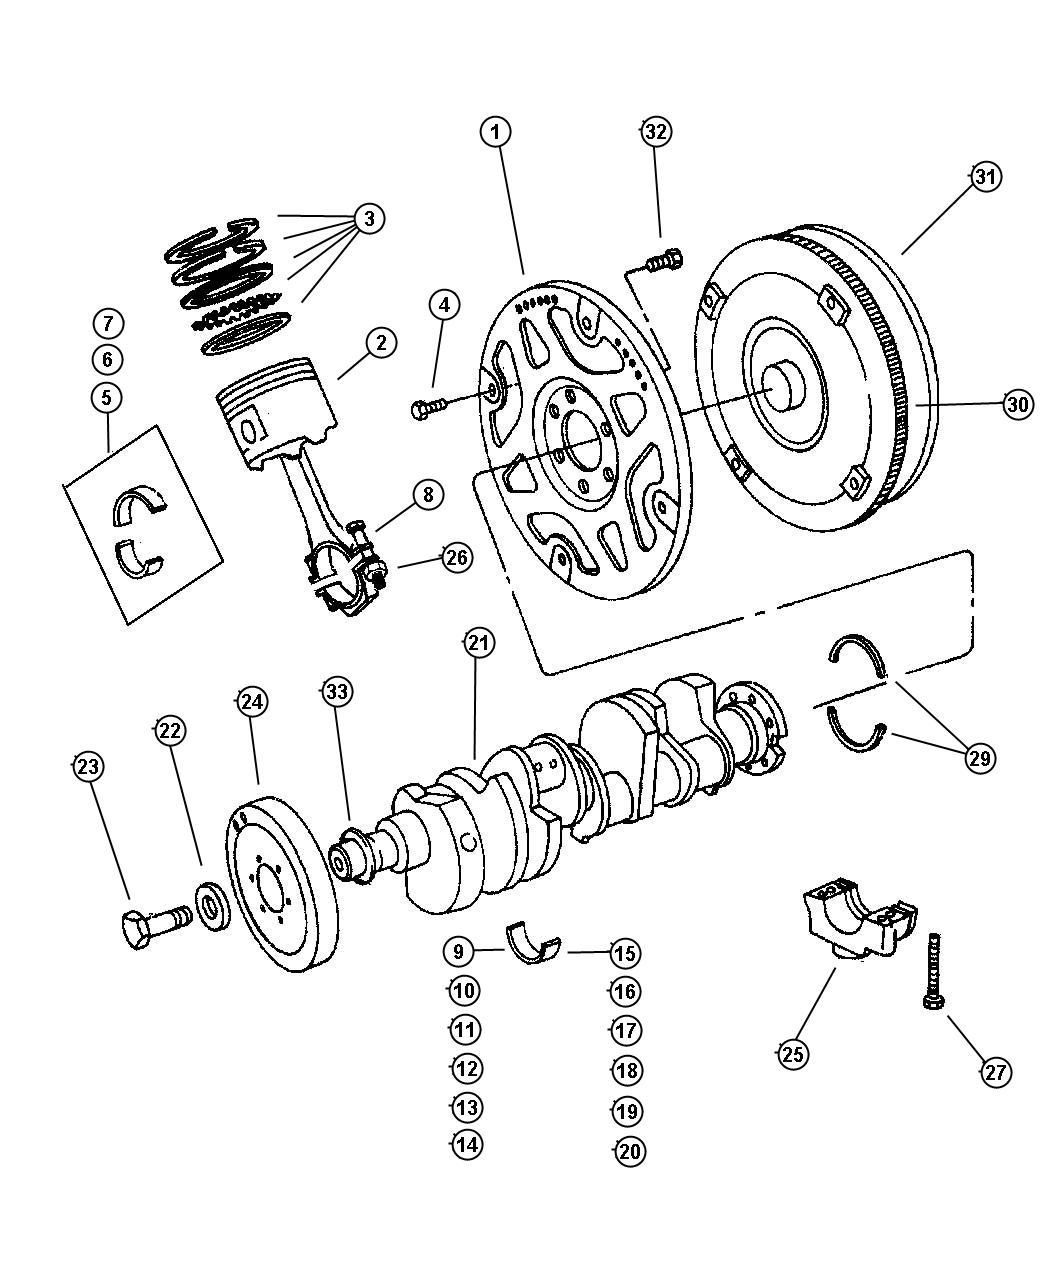 Service manual [1996 Jeep Grand Cherokee Torque Converter